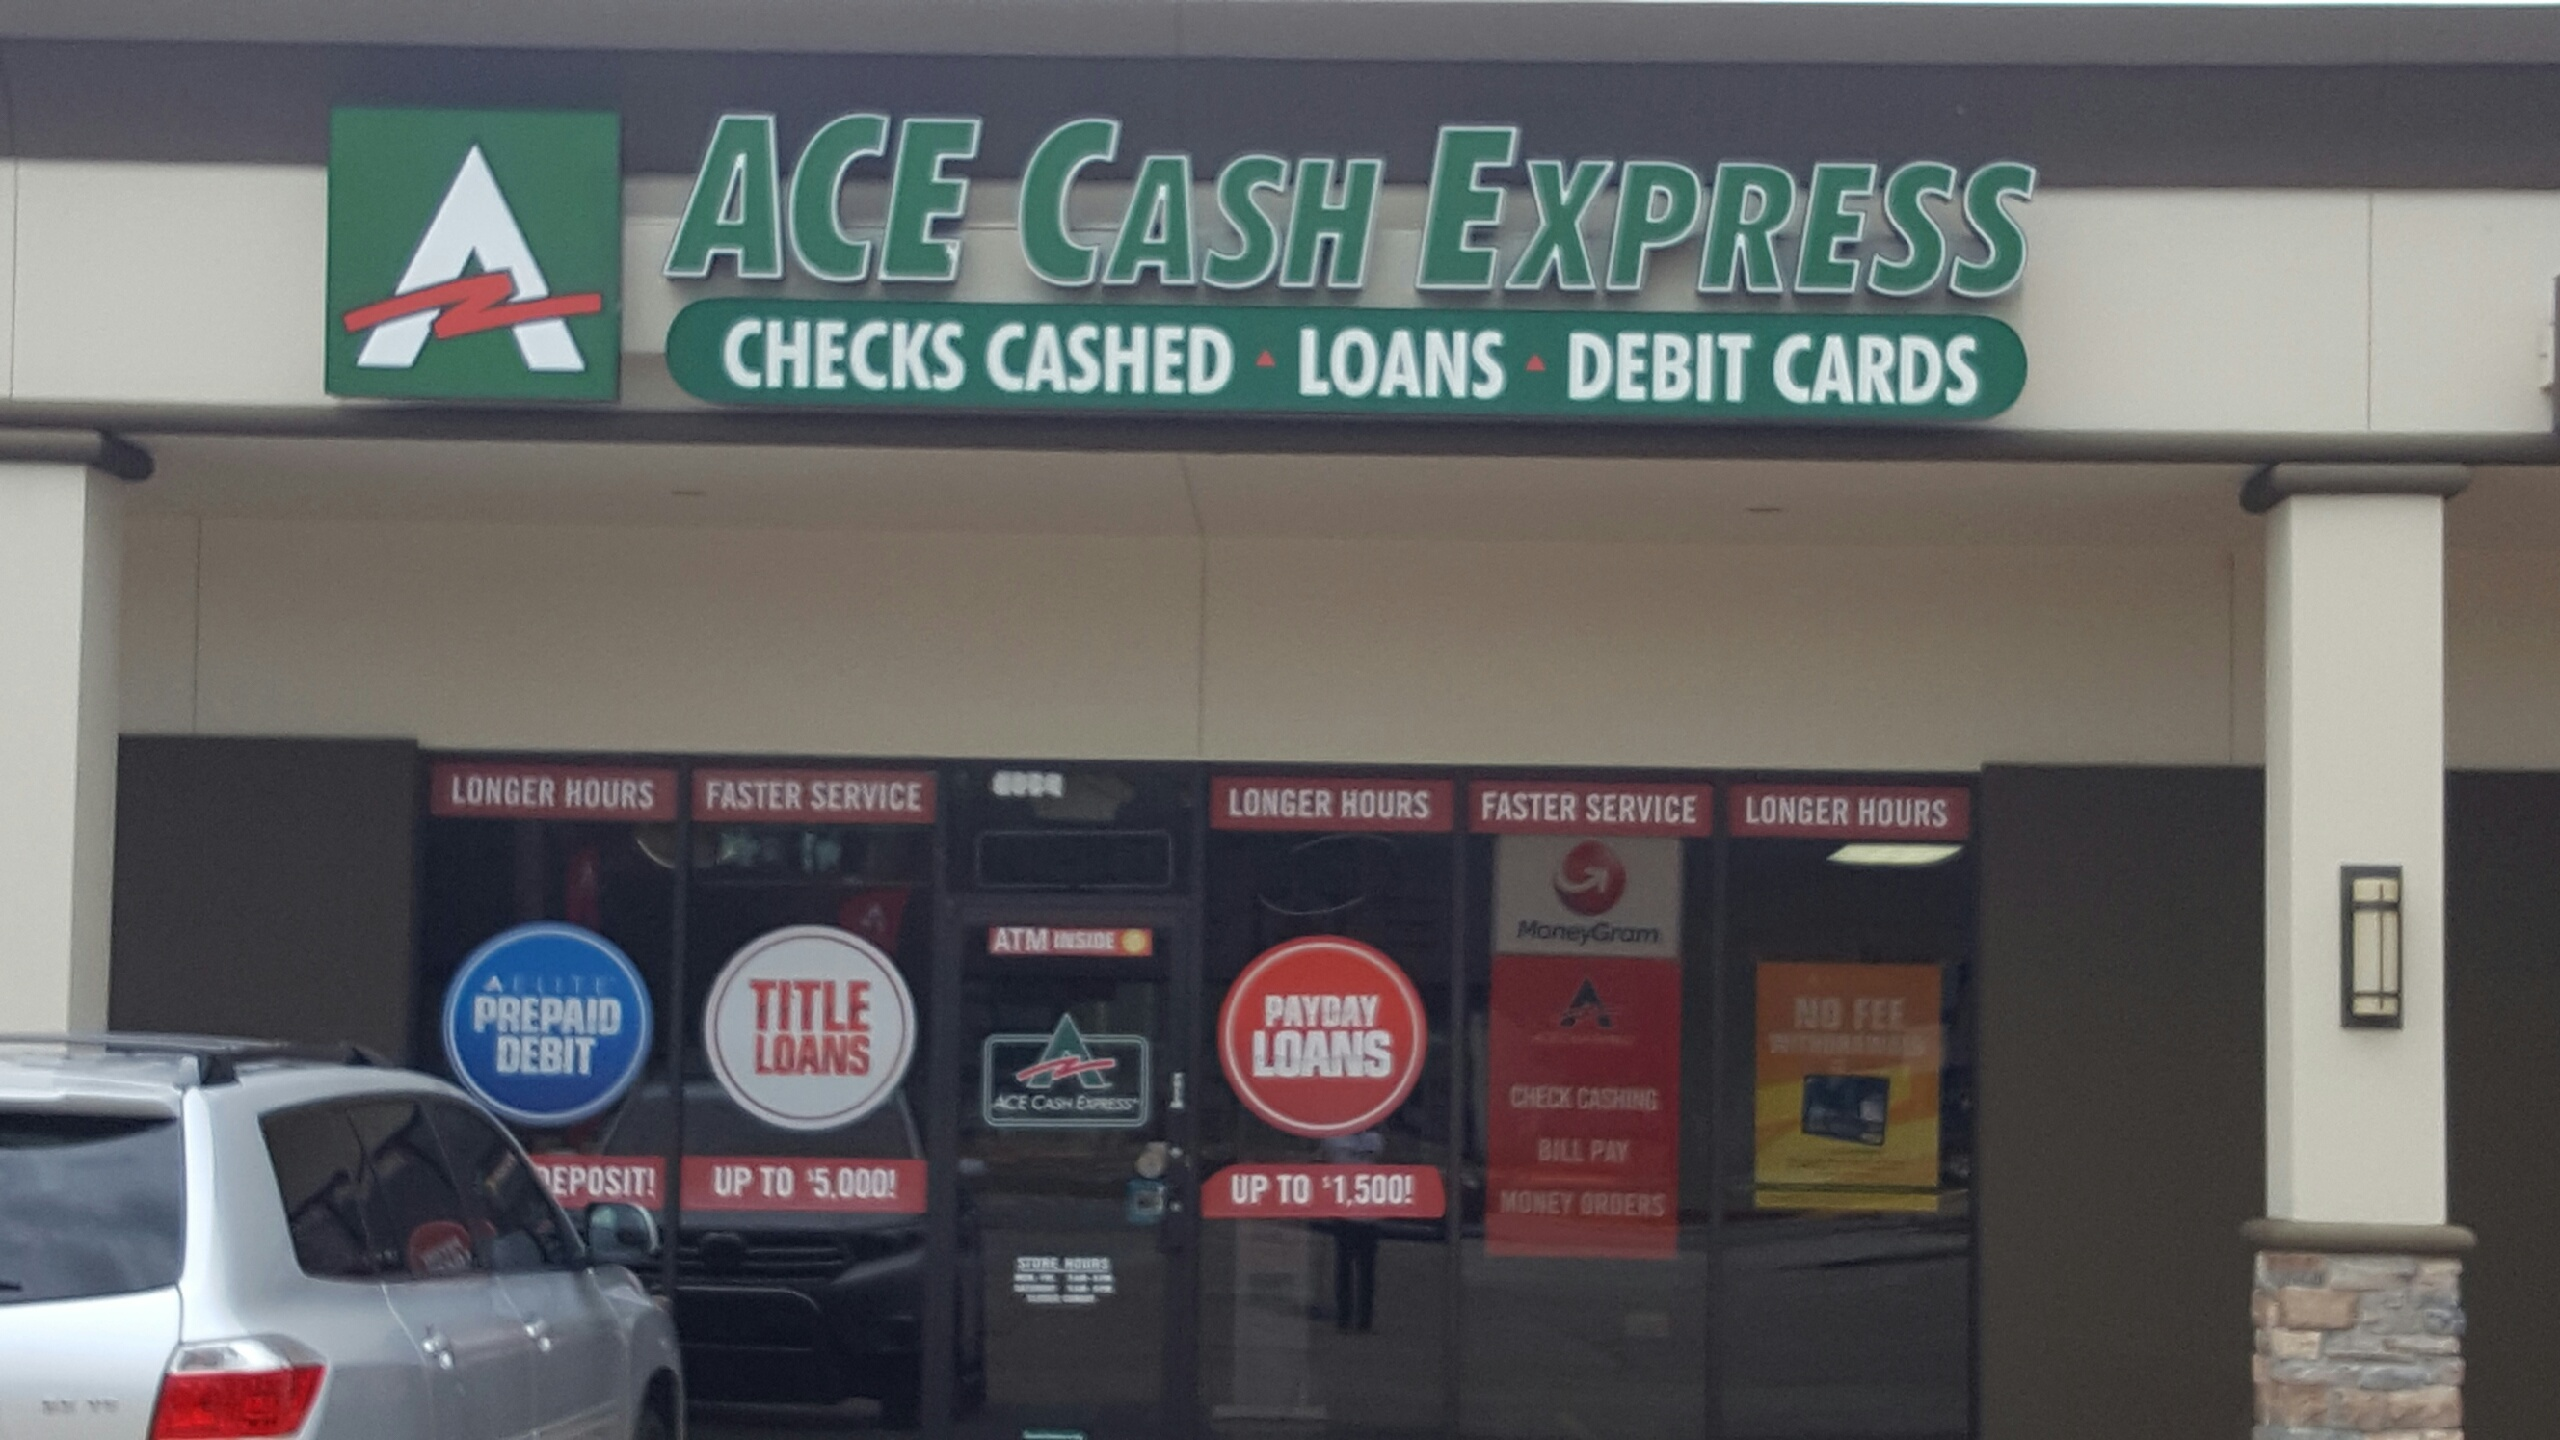 ACE Cash Express offers instant loan approvals for quick cash and payday loans. Register today and get discounts and special offers for short-term and long-term loans in the amount of your choice, as well as title loans, debit cards and auto insurance.